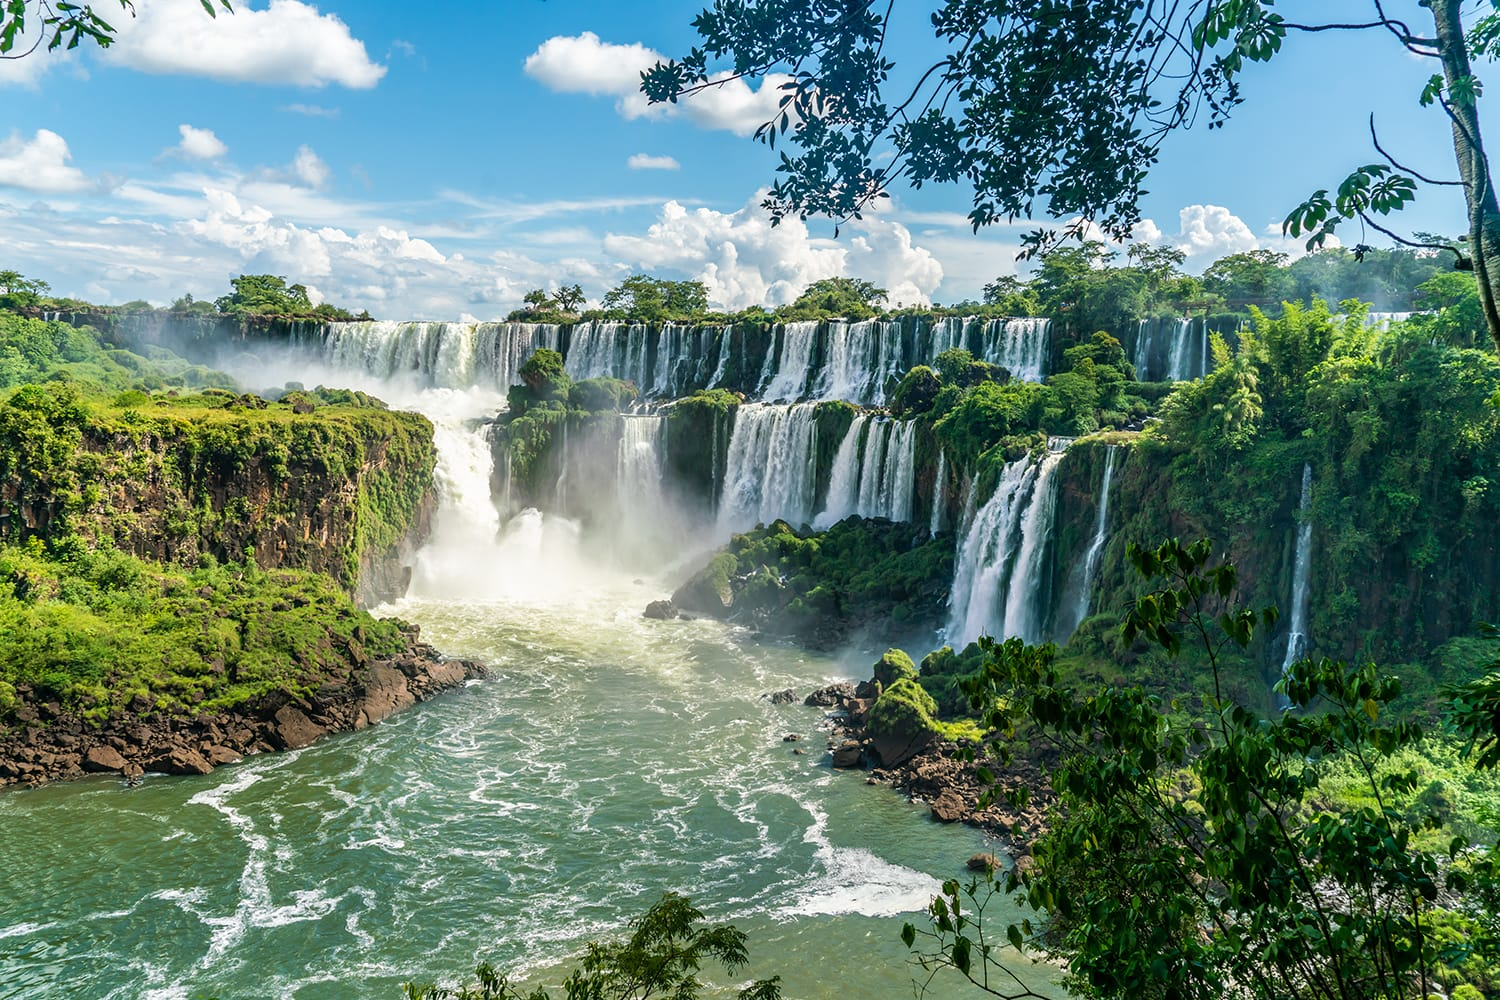 Part of The Iguazu Falls seen from the Argentinian National Park, South America